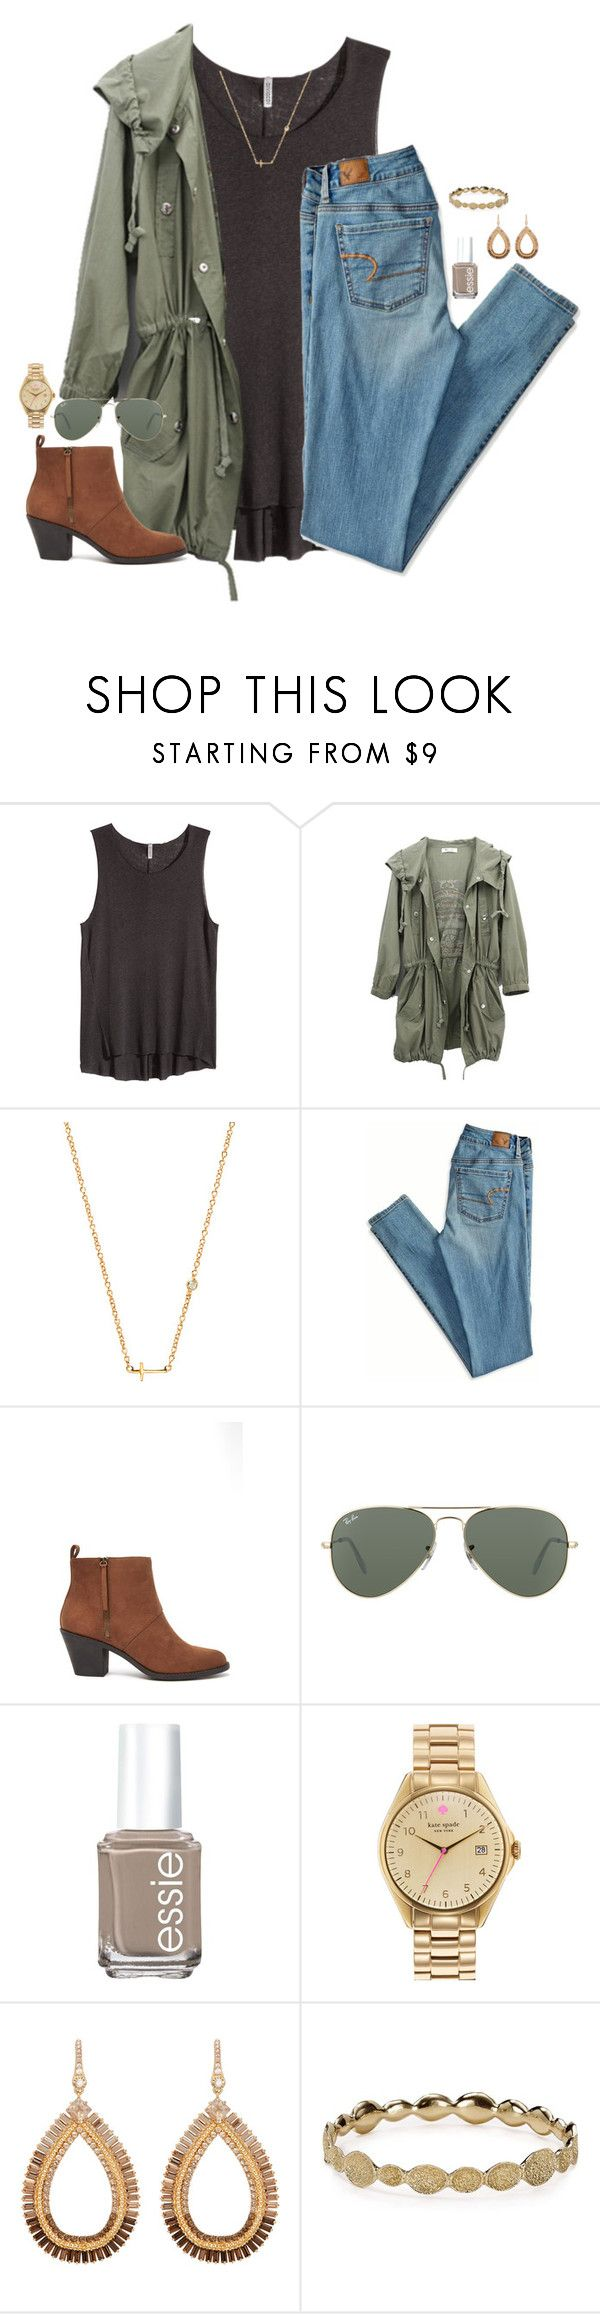 """""""read d!"""" by kaley-ii ❤ liked on Polyvore featuring H&M, Sydney Evan, American Eagle Outfitters, Forever 21, Ray-Ban, Essie, Kate Spade, Henri Bendel and Melinda Maria"""